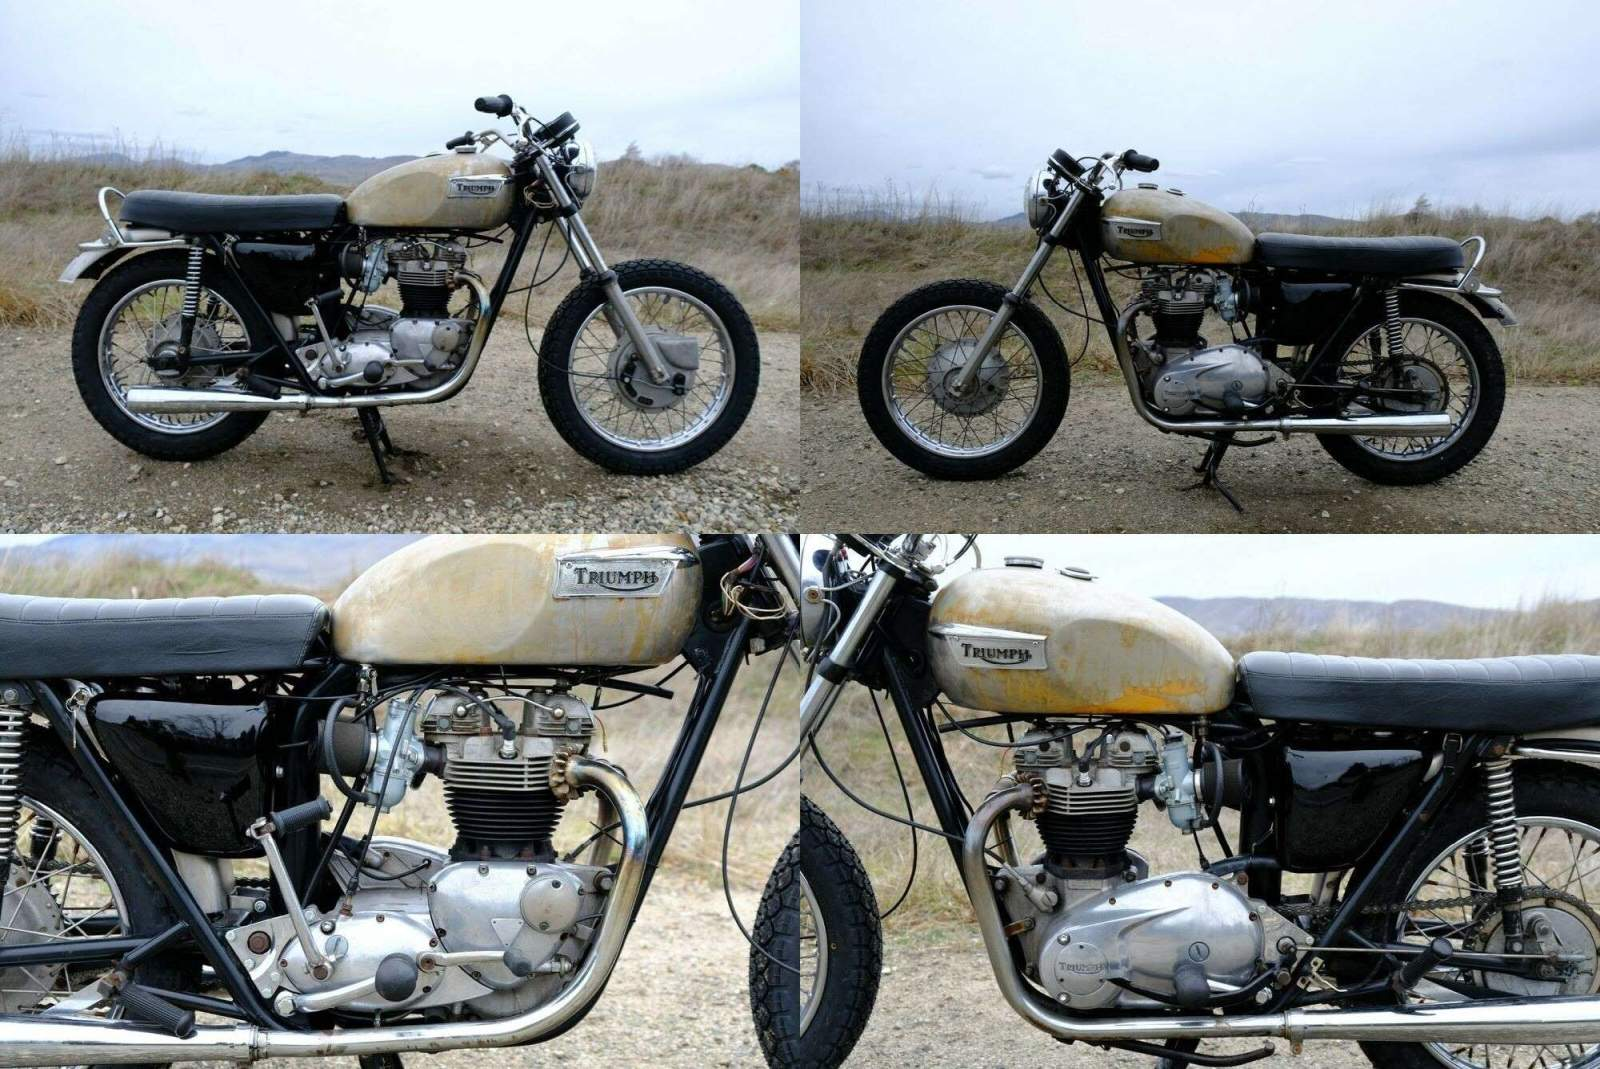 1971 Triumph Bonneville  used for sale near me